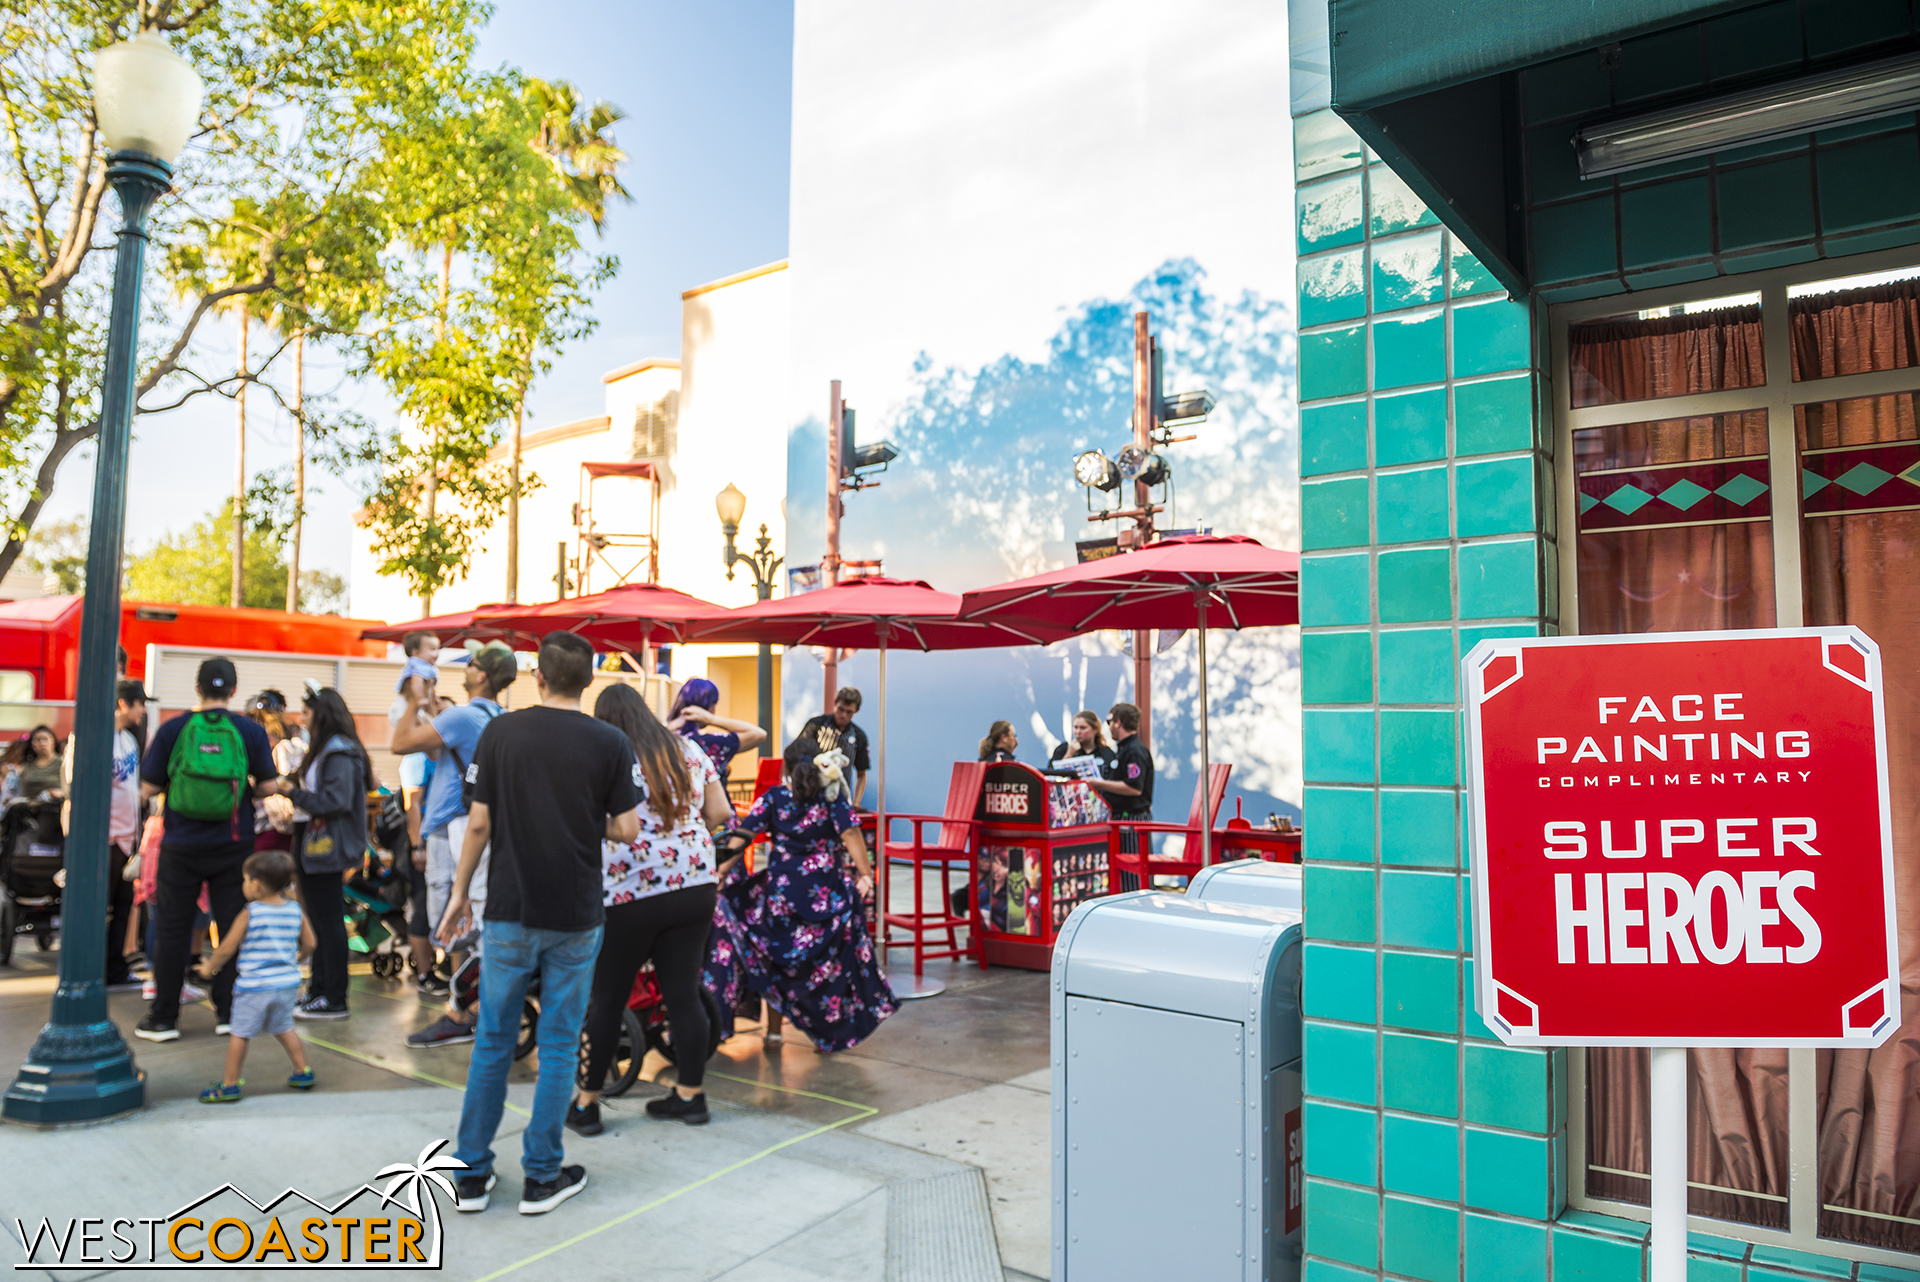 People can get Marvel facepainting here, next to the Hollywood Blvd forced perspective mural.